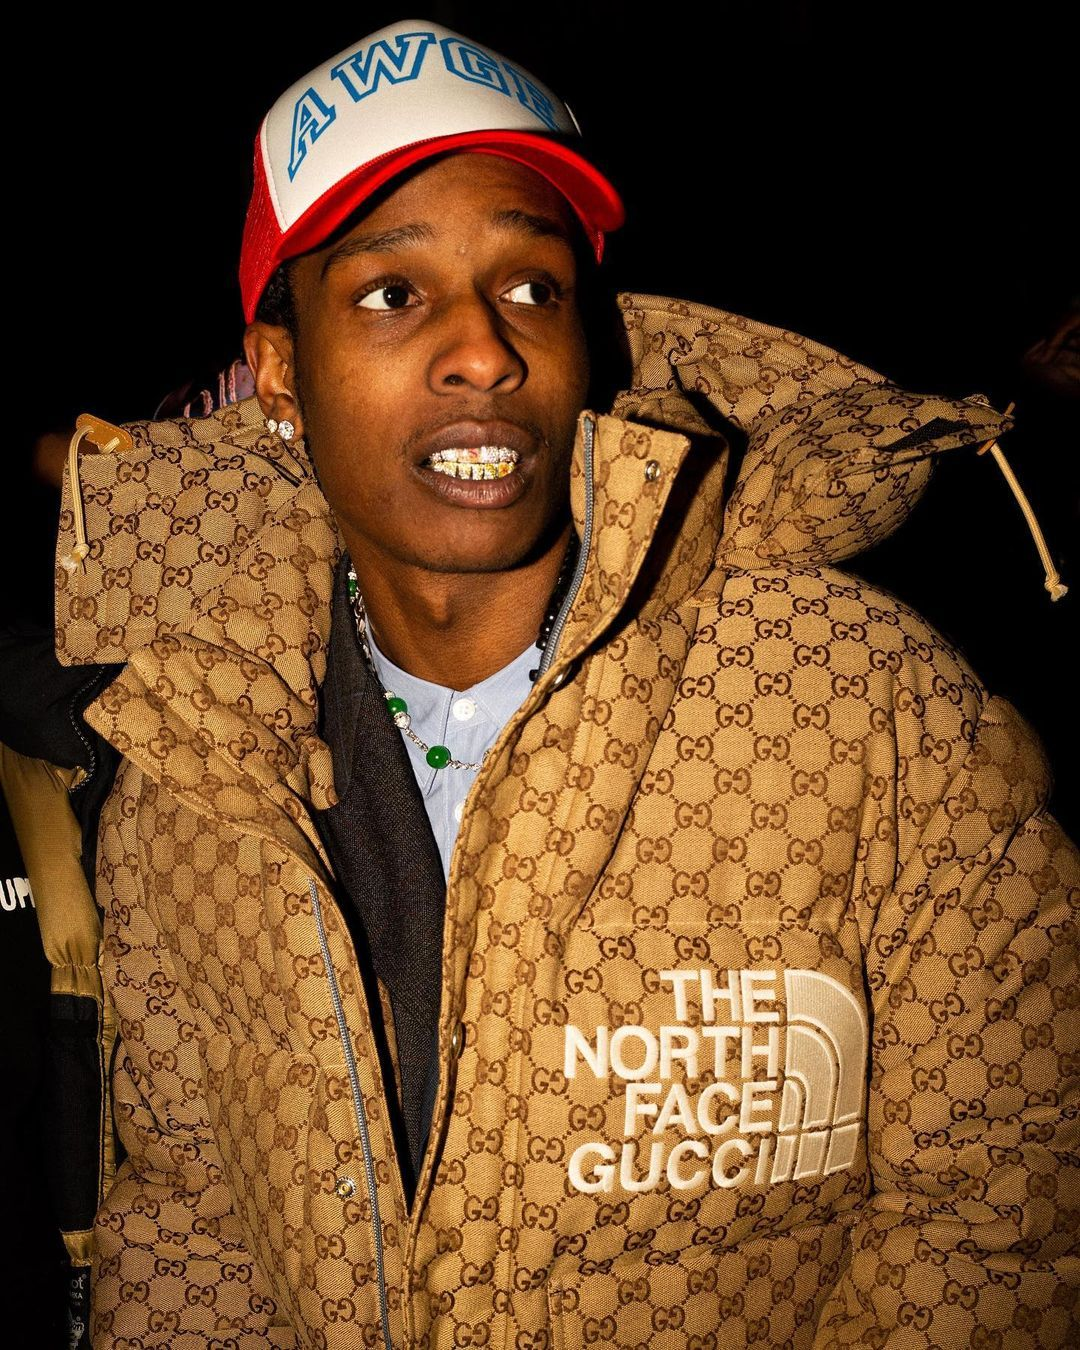 Gucci Official On Instagram A Ap Rocky Asaprocky Spotted In New York City Wearing A Down Bomber Jacket With Allover Gg Motif From The Thenorthfacexgucci I 2021 [ 1350 x 1080 Pixel ]